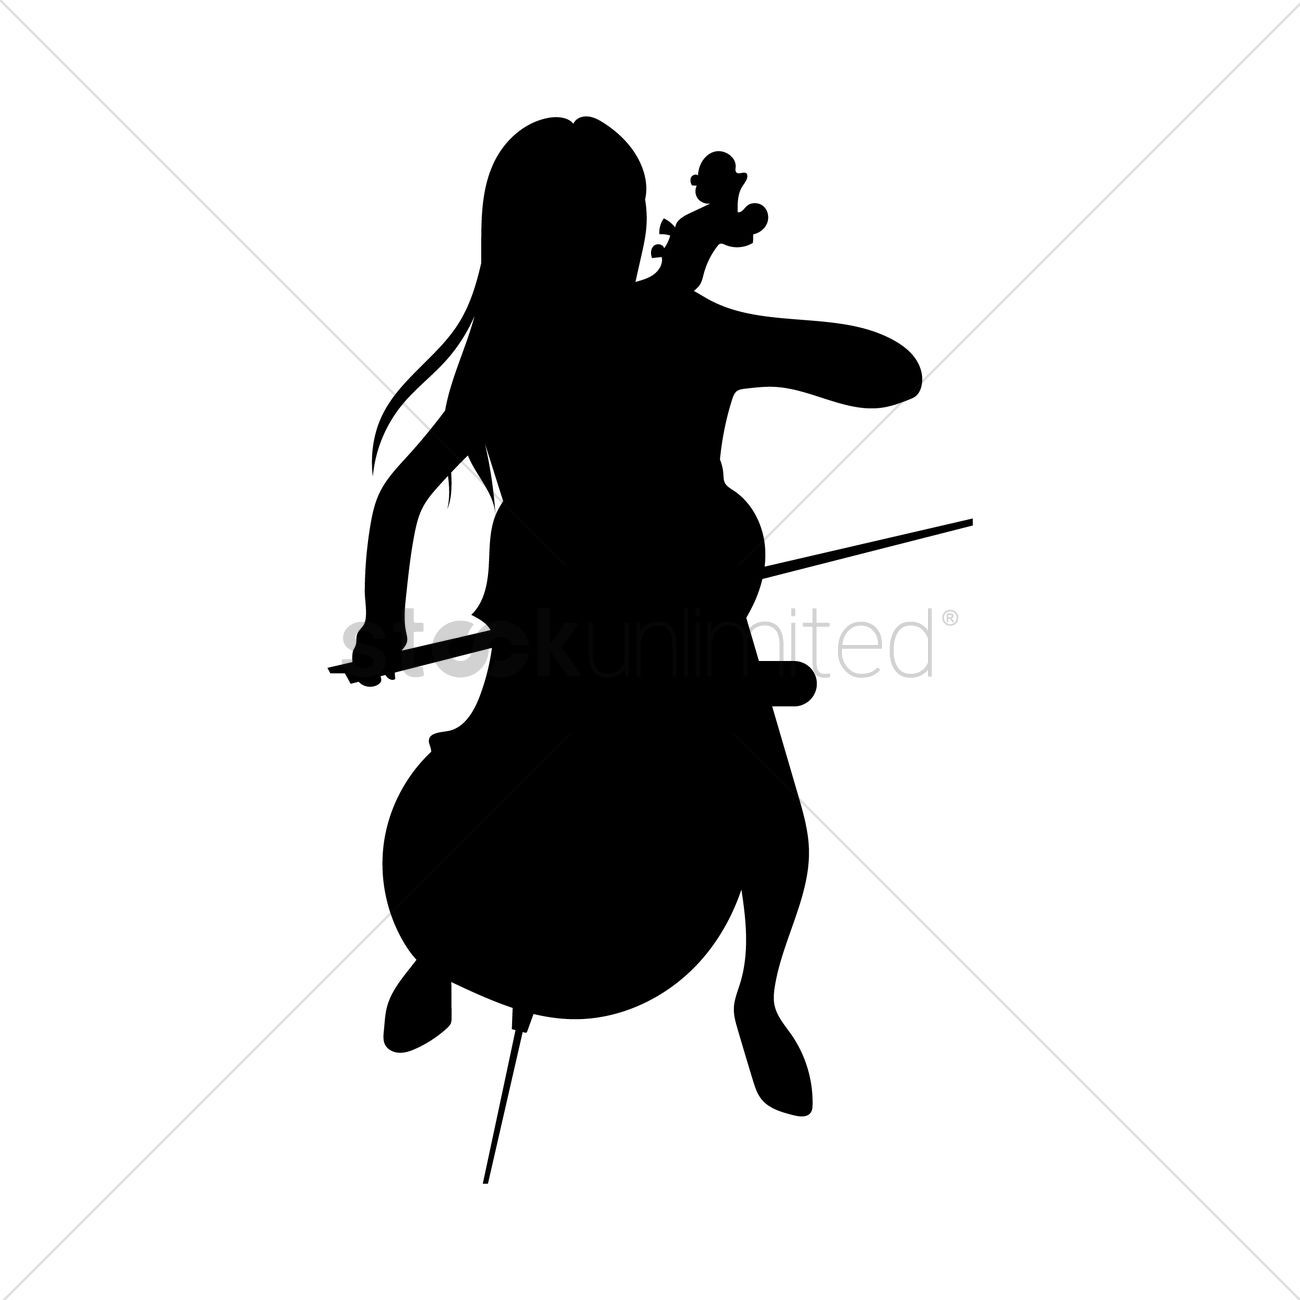 1300x1300 Woman Playing Cello Vector Image 1418010 Stockunlimited And Female